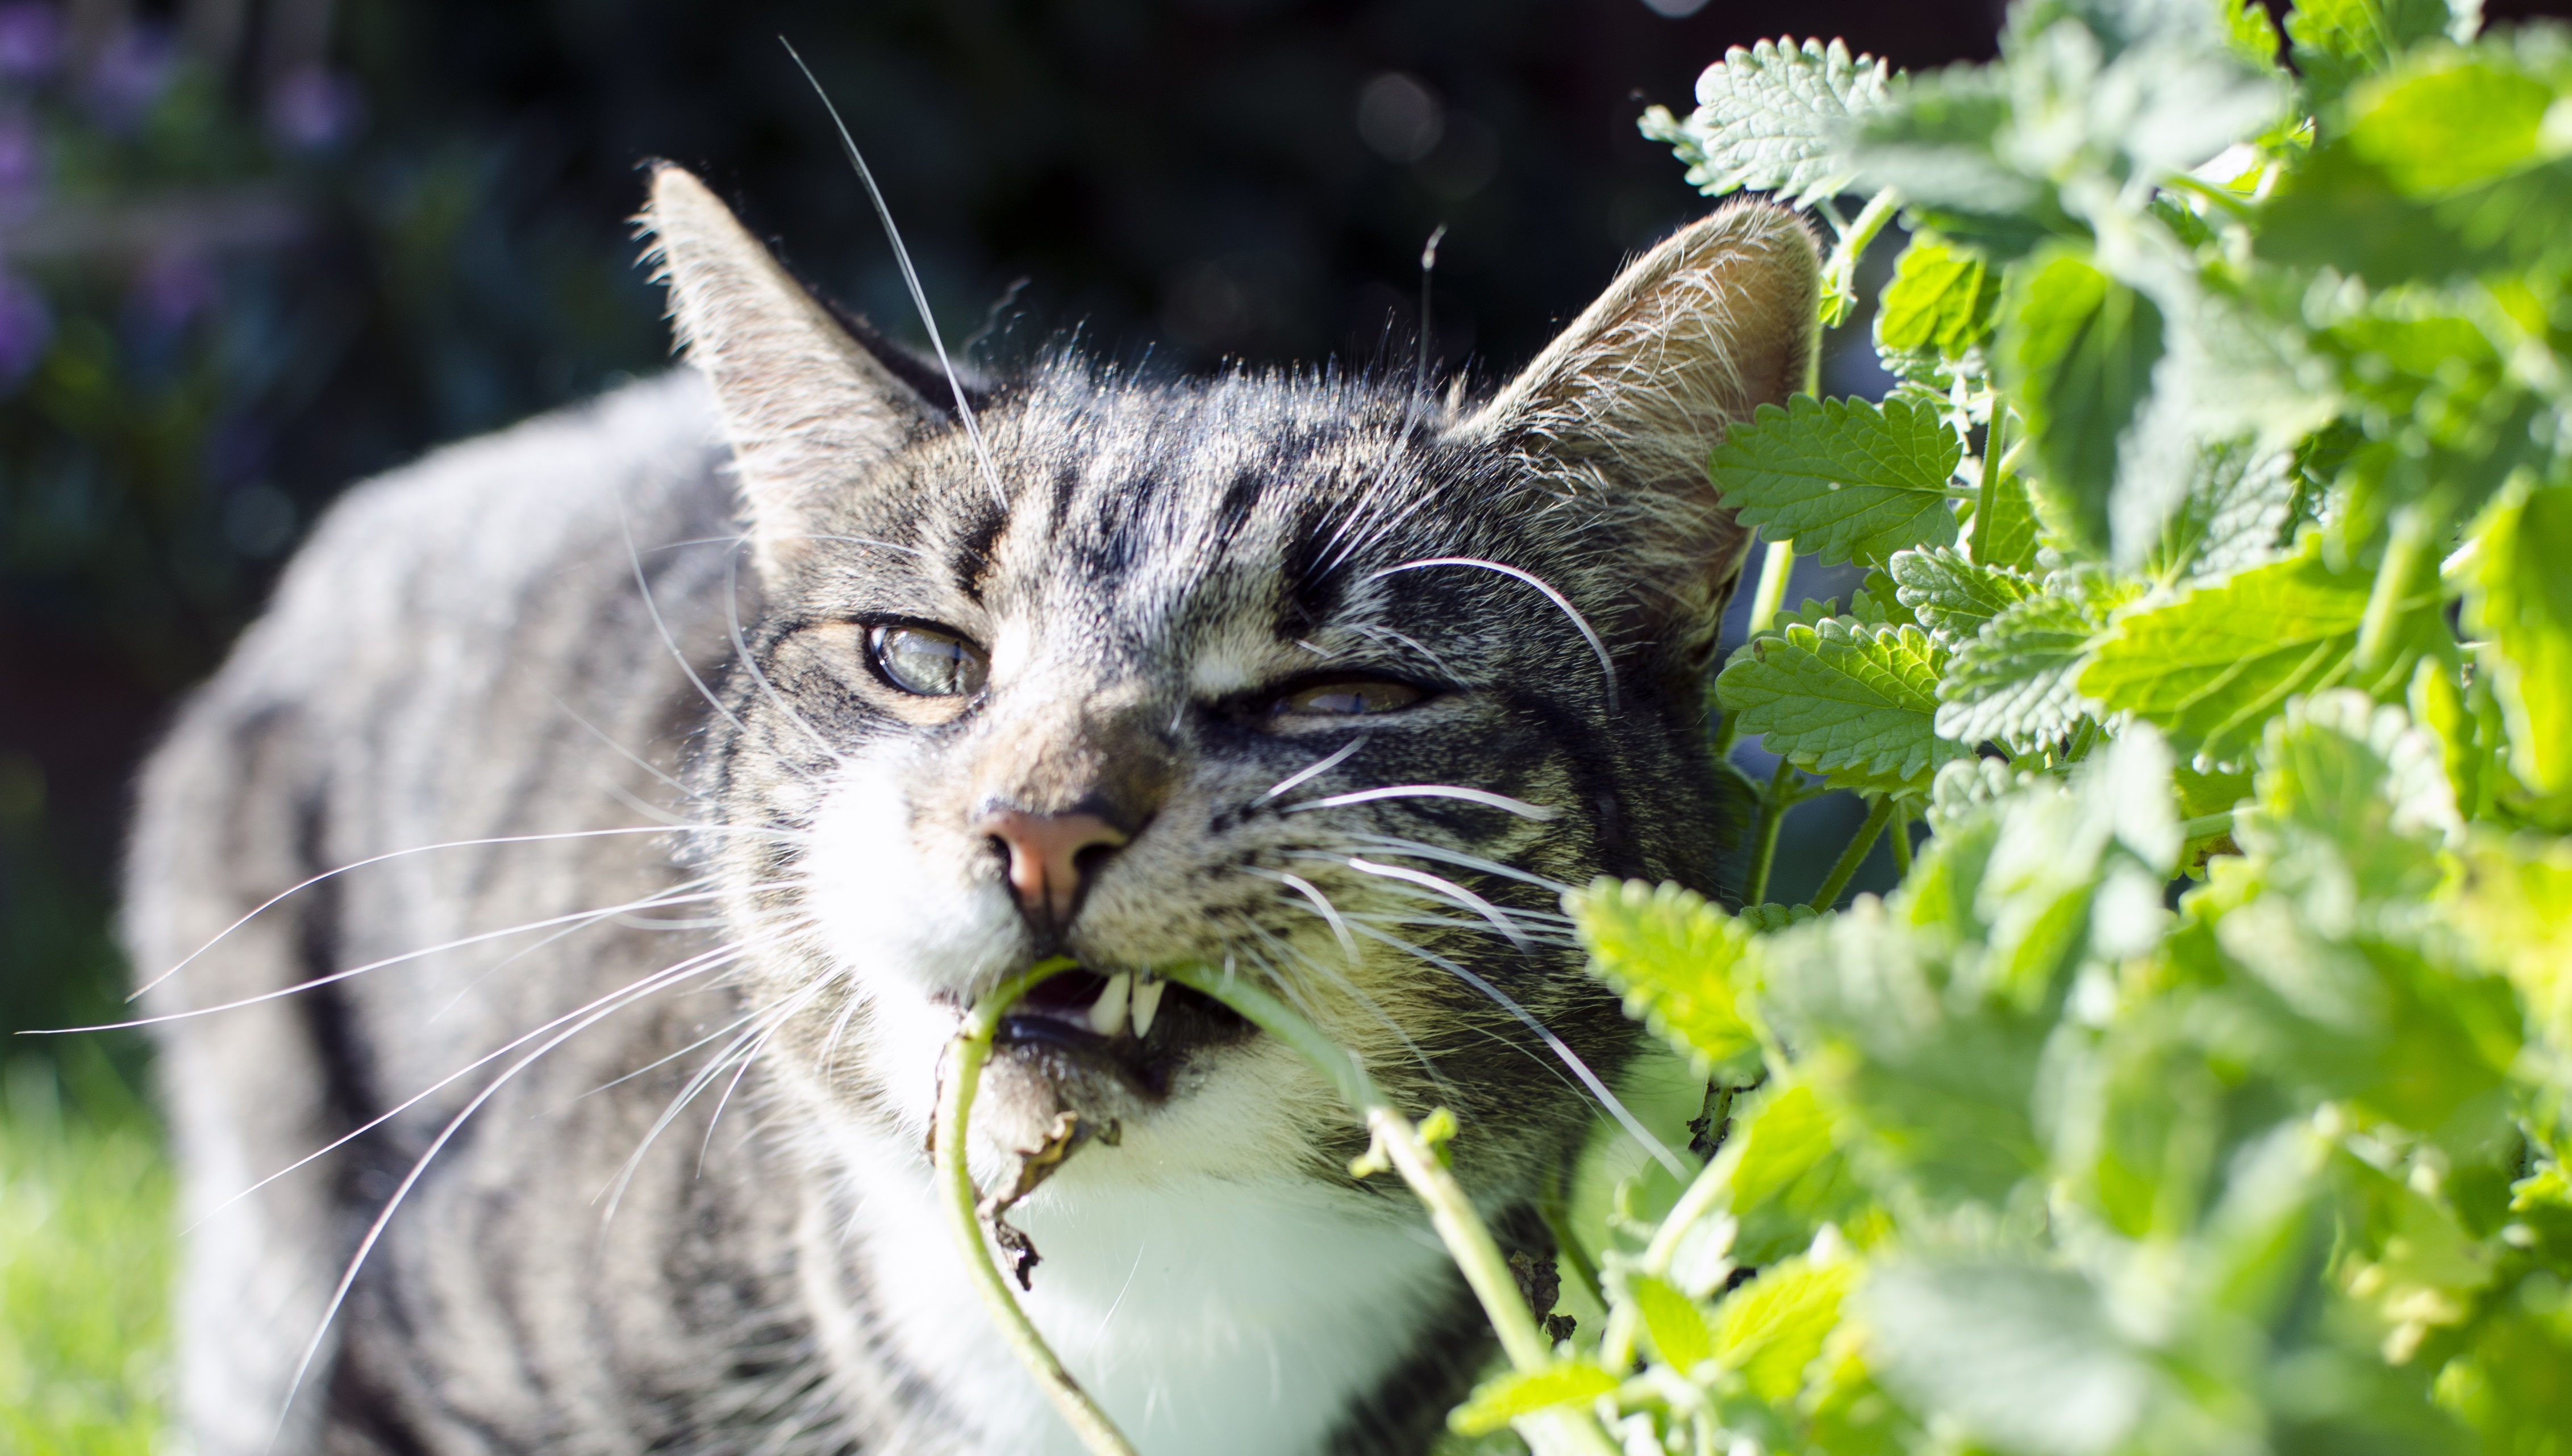 8. Wild catnip will drive them crazy